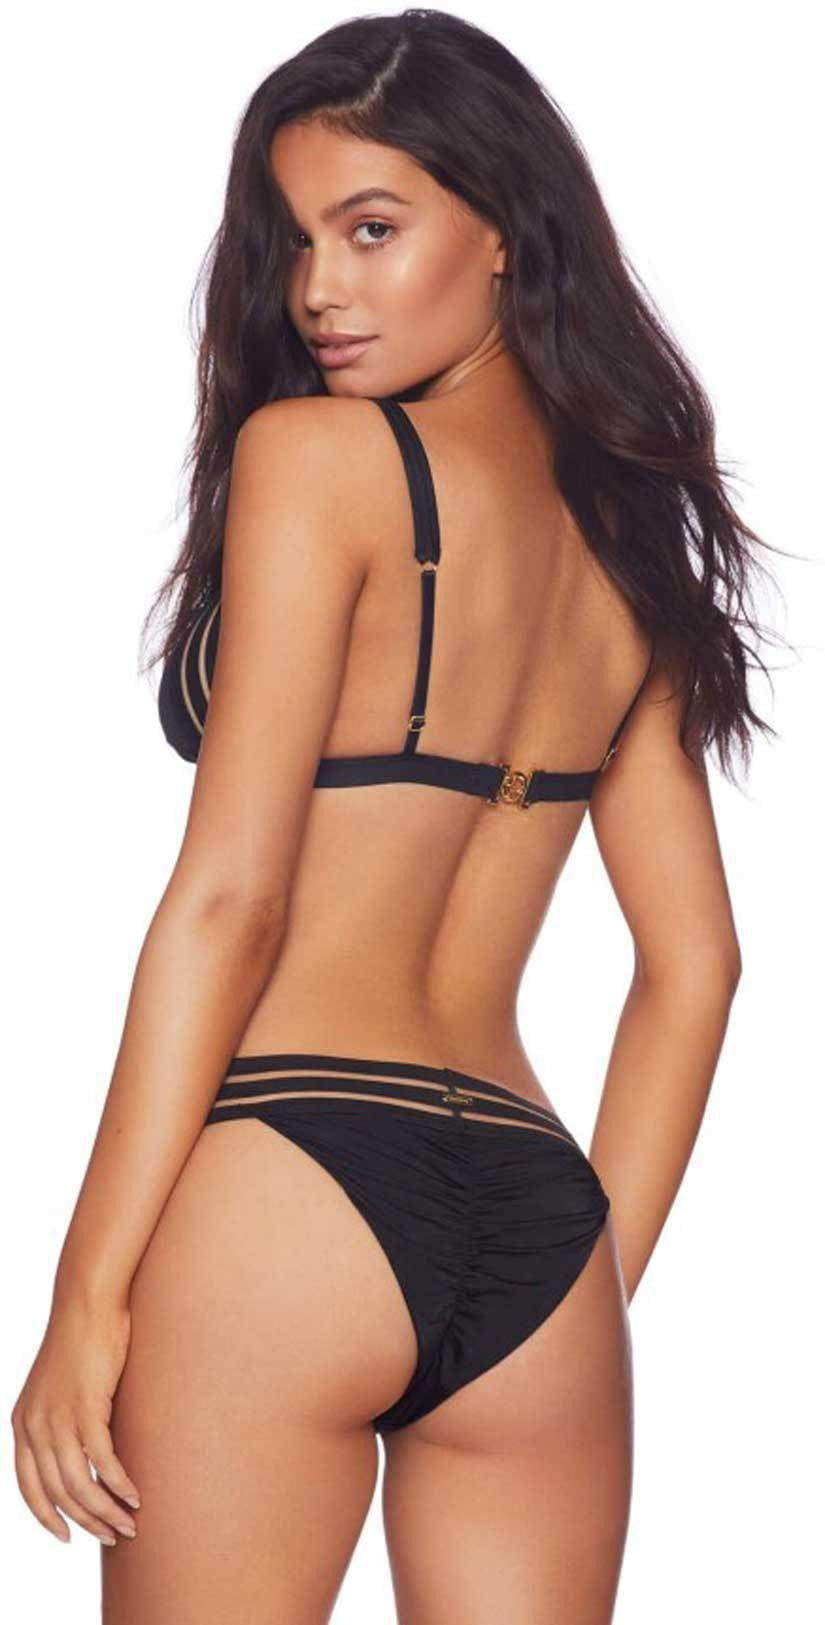 Beach Bunny Sheer Addiction Skimpy Bottom in Black B16125B1-BLCK: